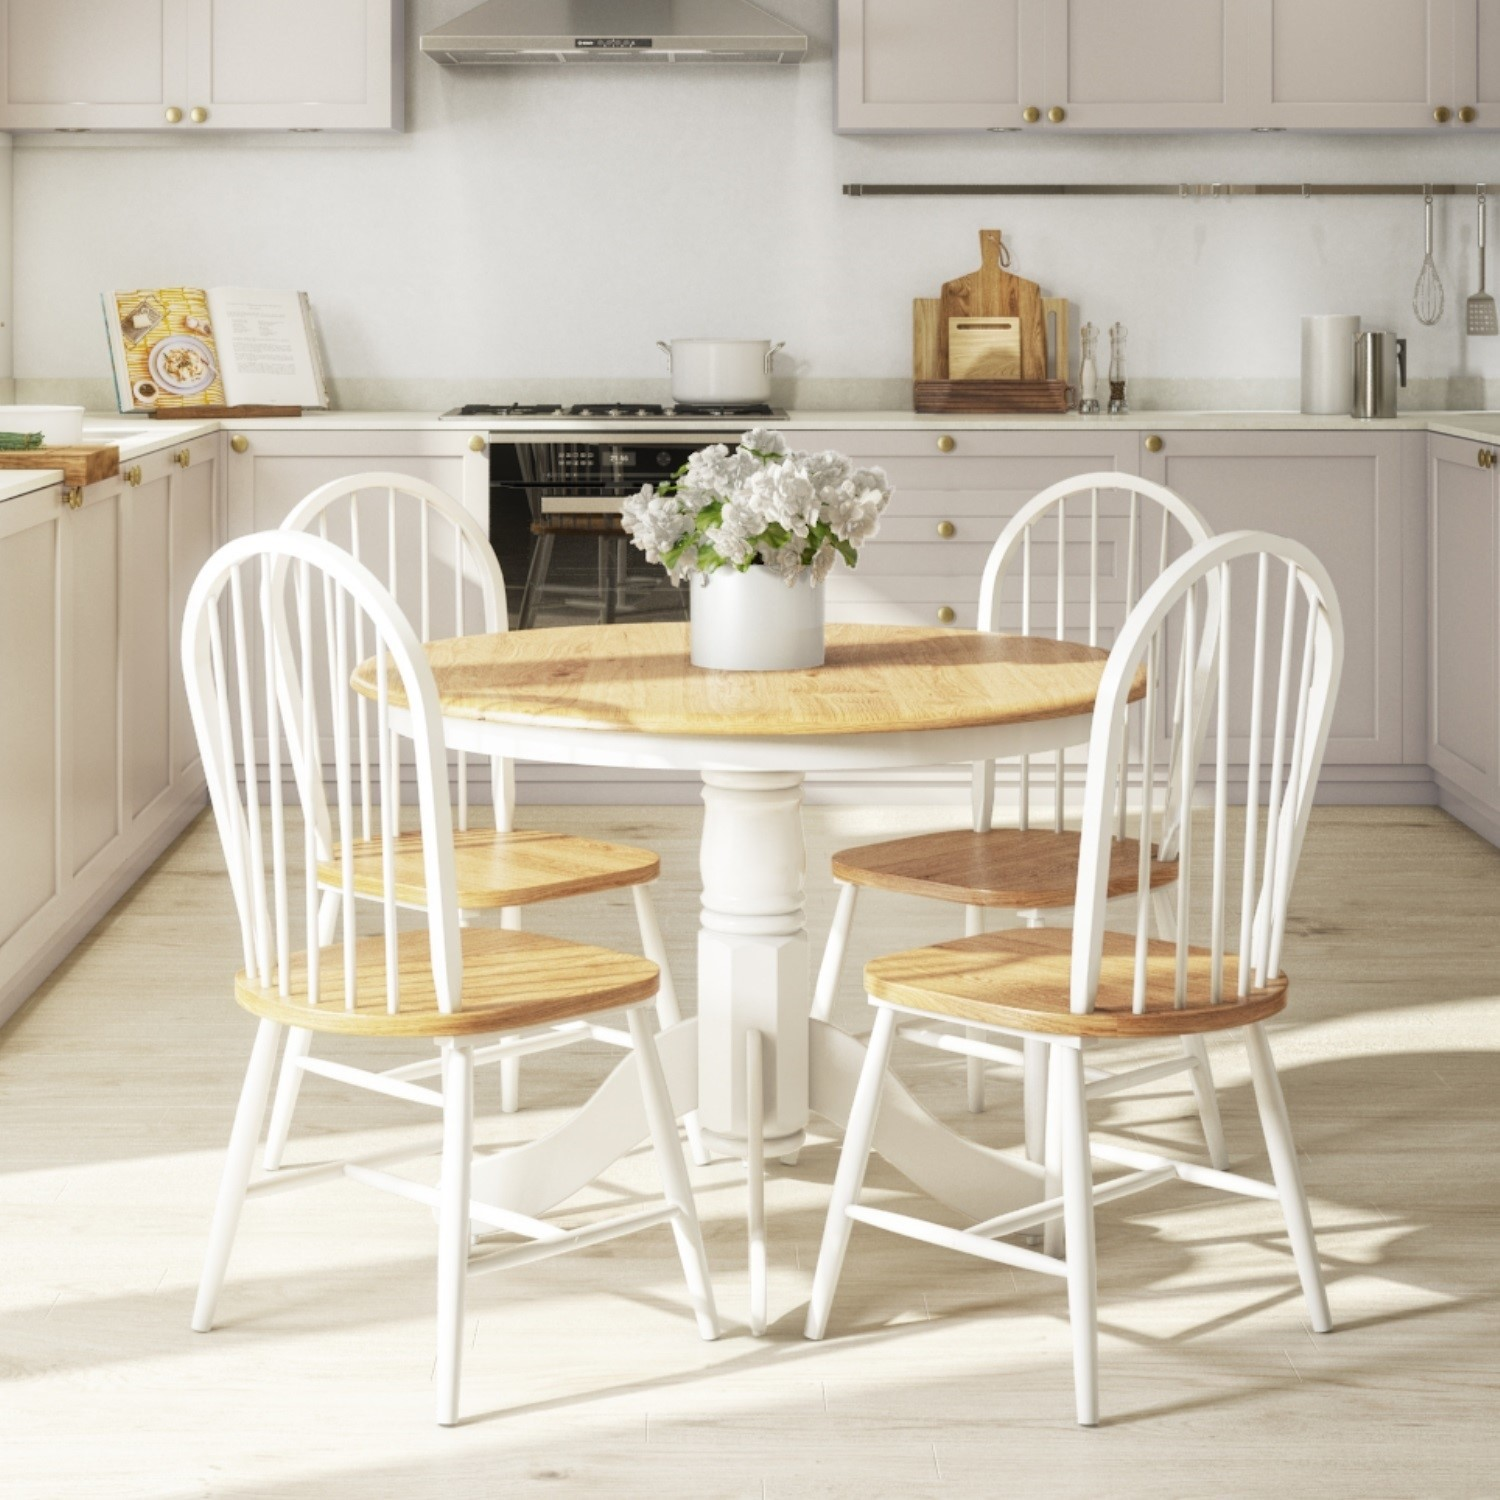 kitchen island dining set rhode island natural white round kitchen dining table and 4 chairs set 5060388565596 ebay 7384